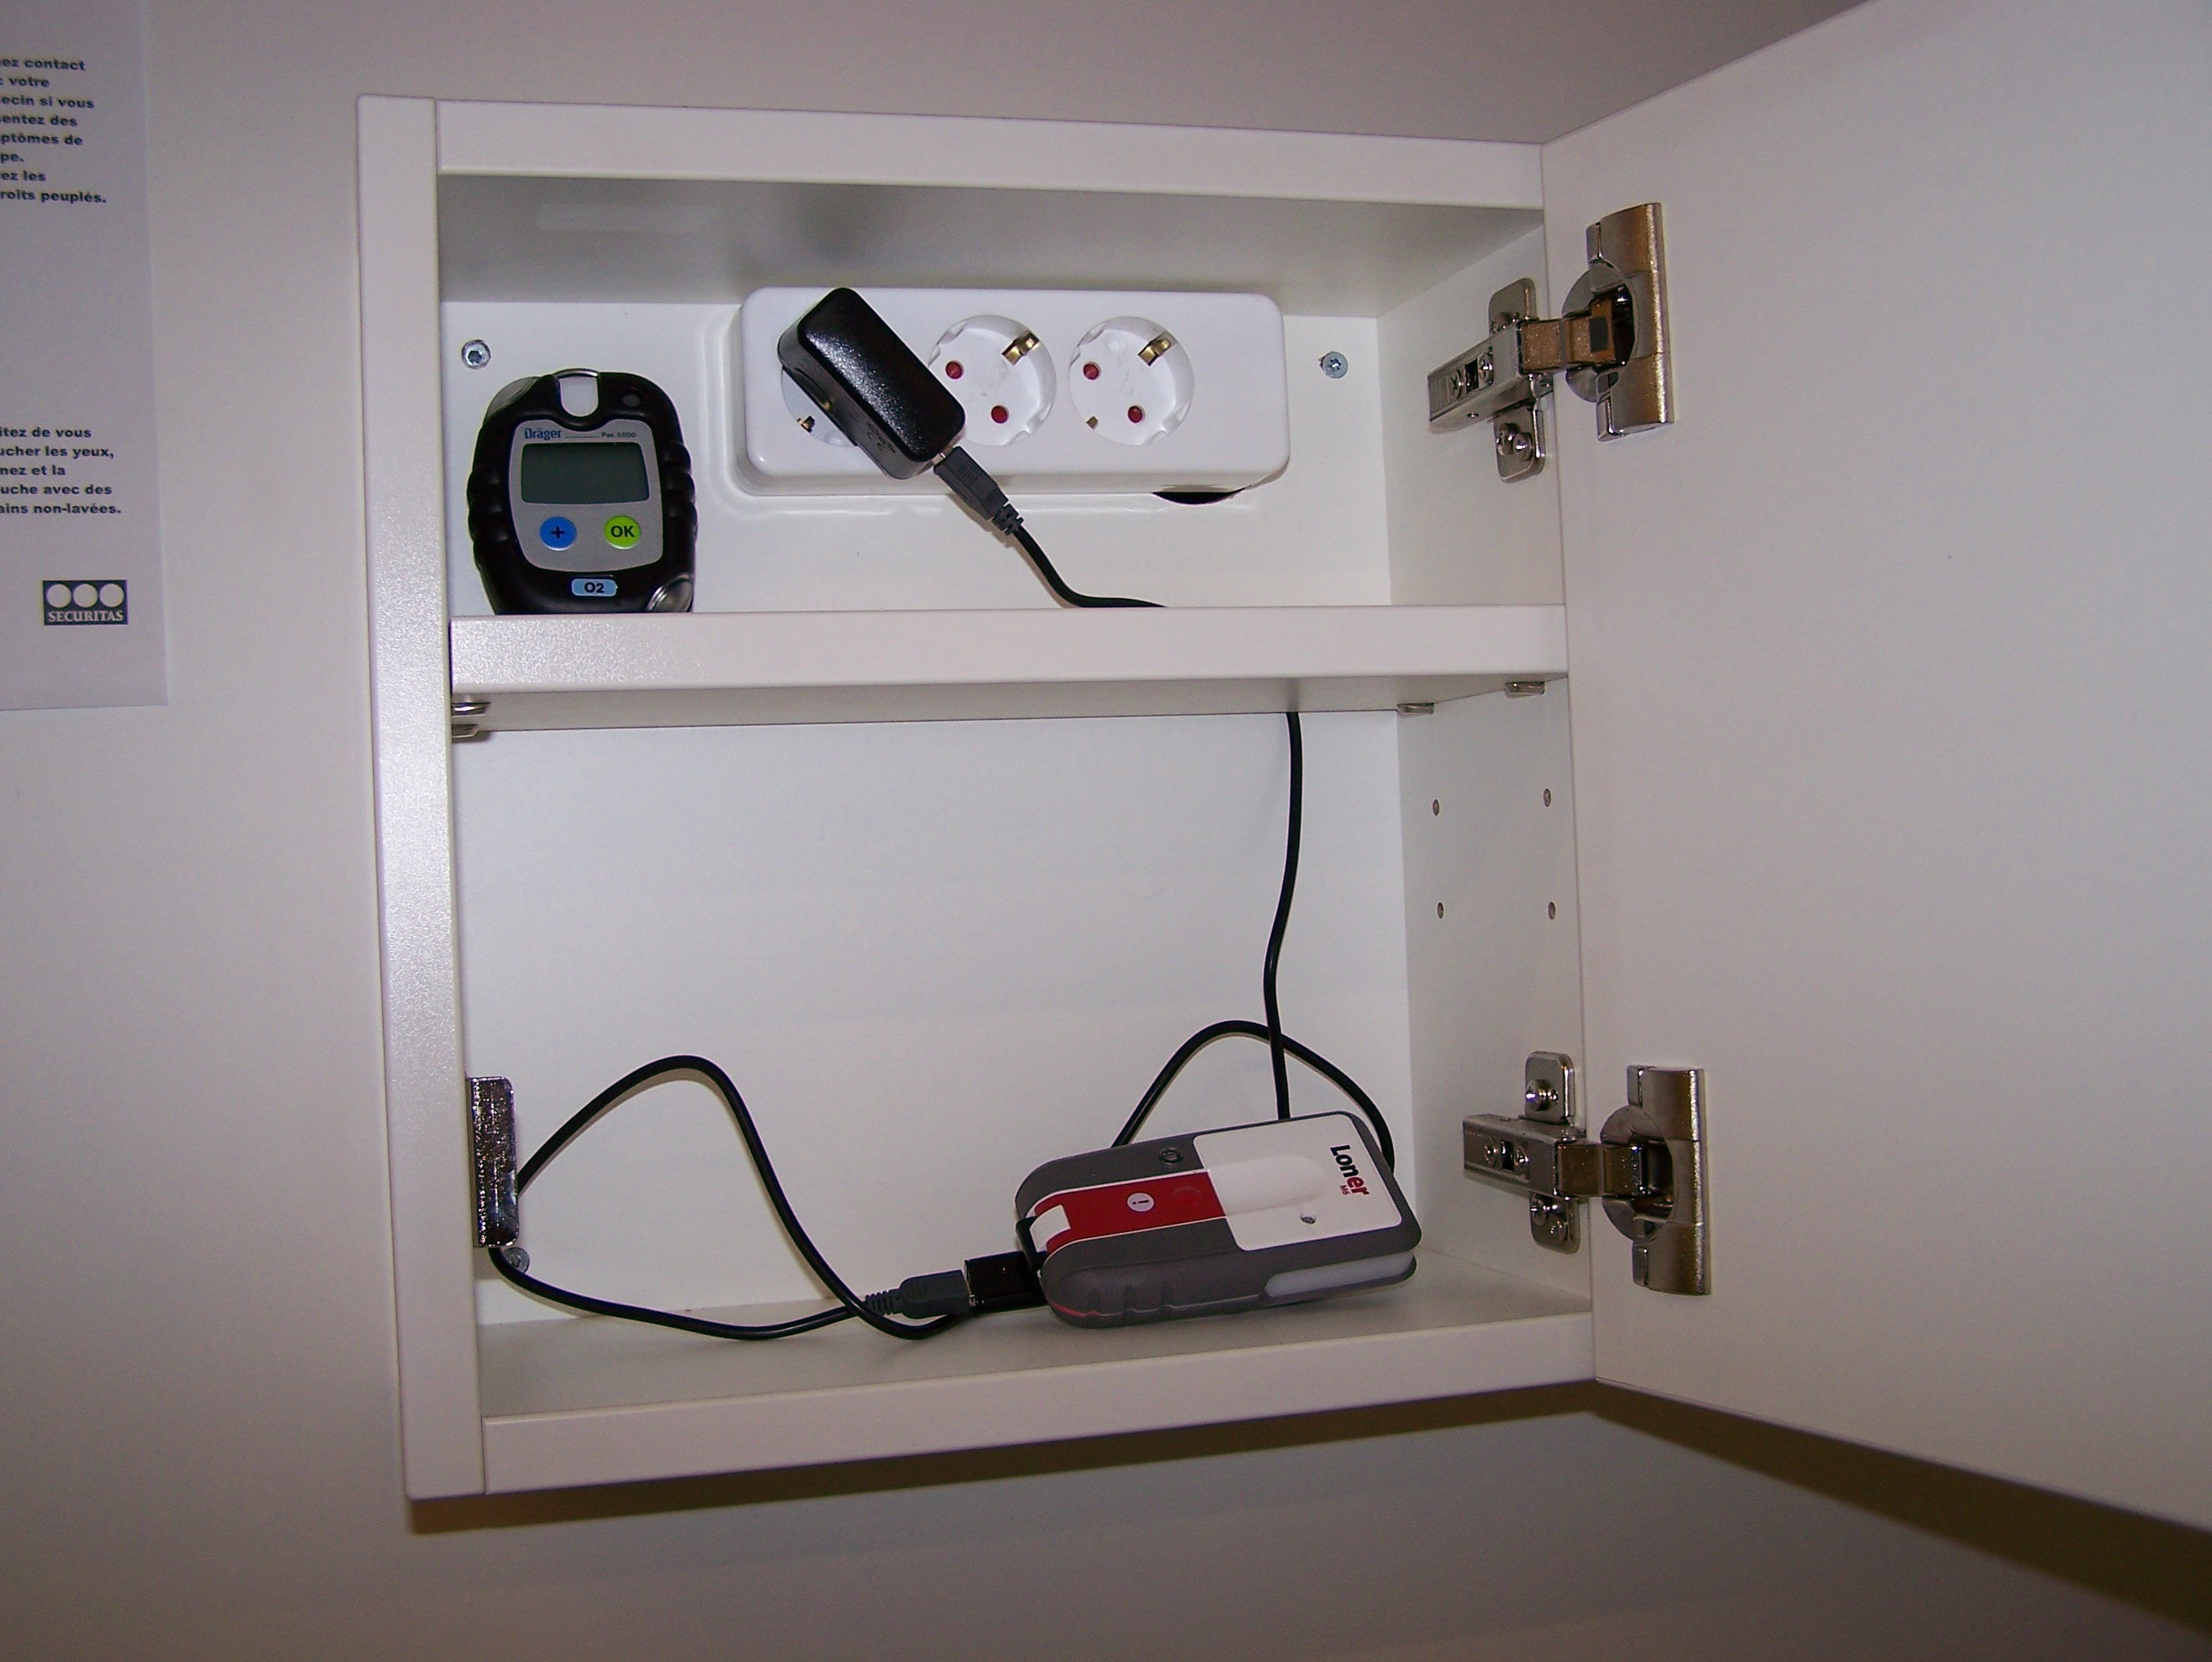 external/lab/personal-alert-safety-system/img/pass_img-3.jpg